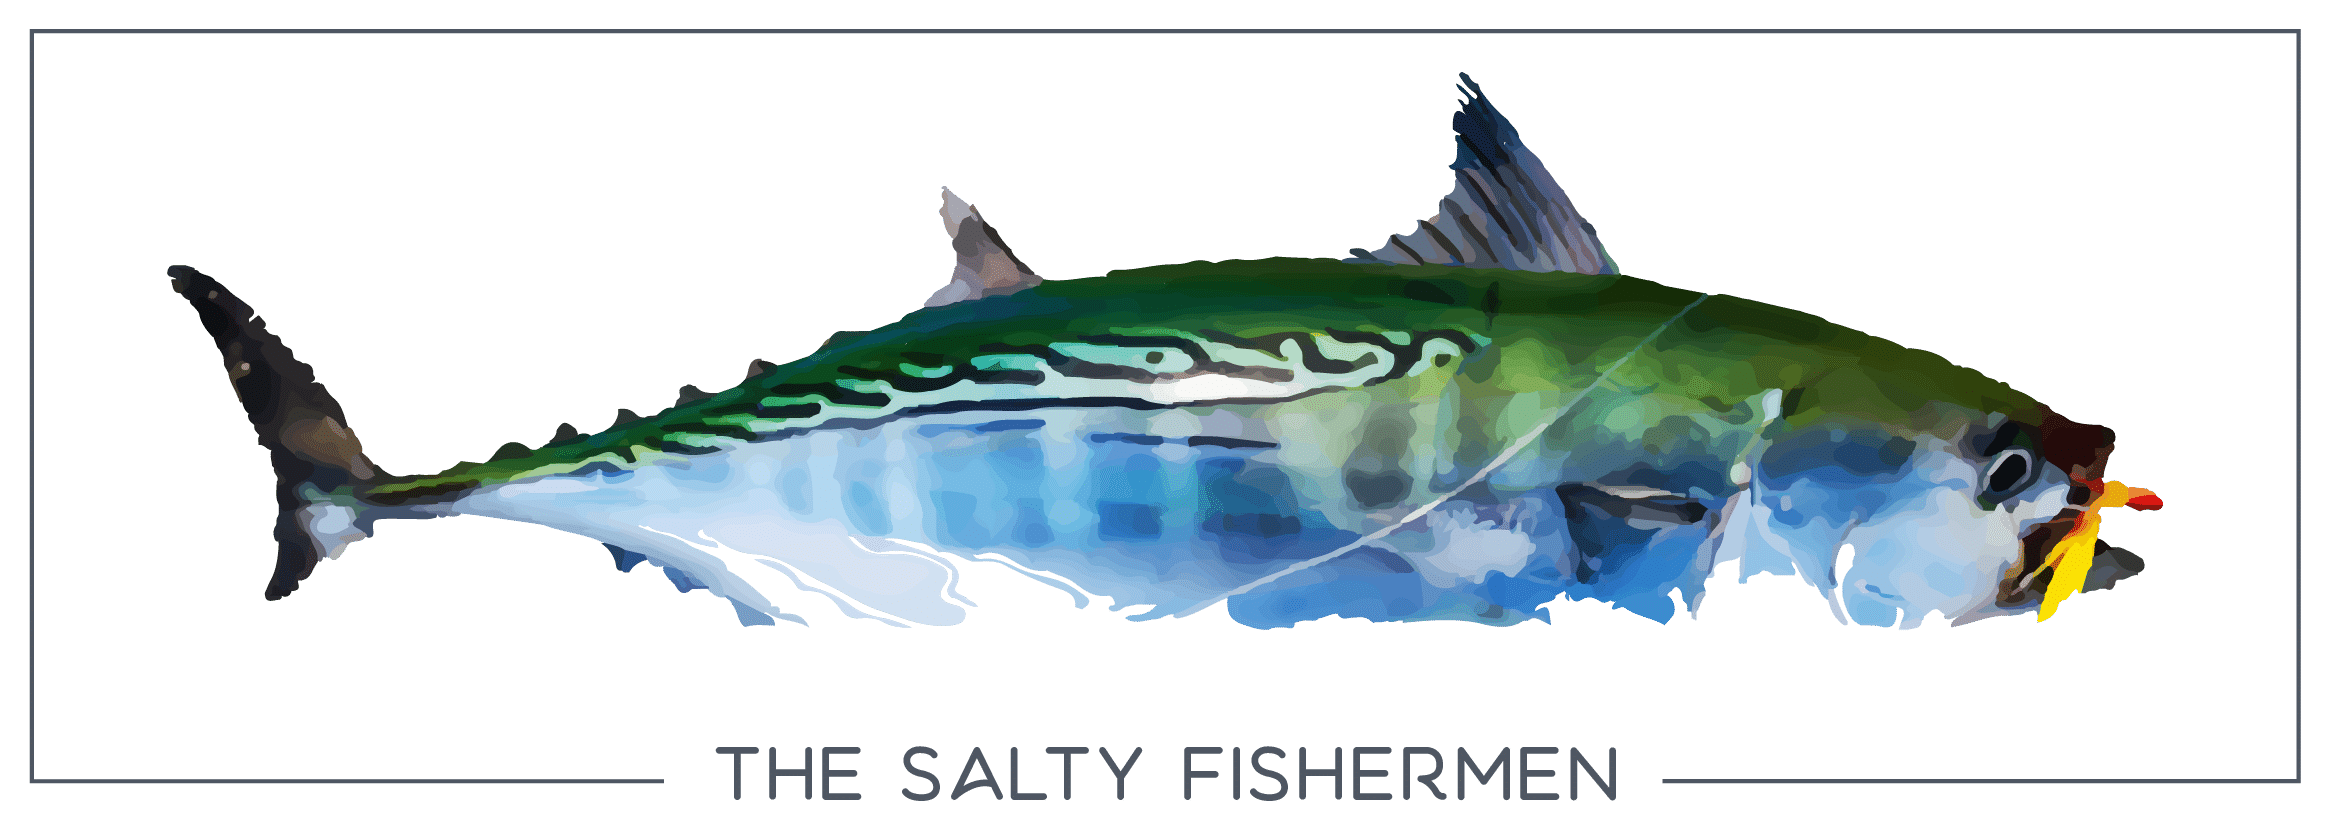 The Salty Fishermen